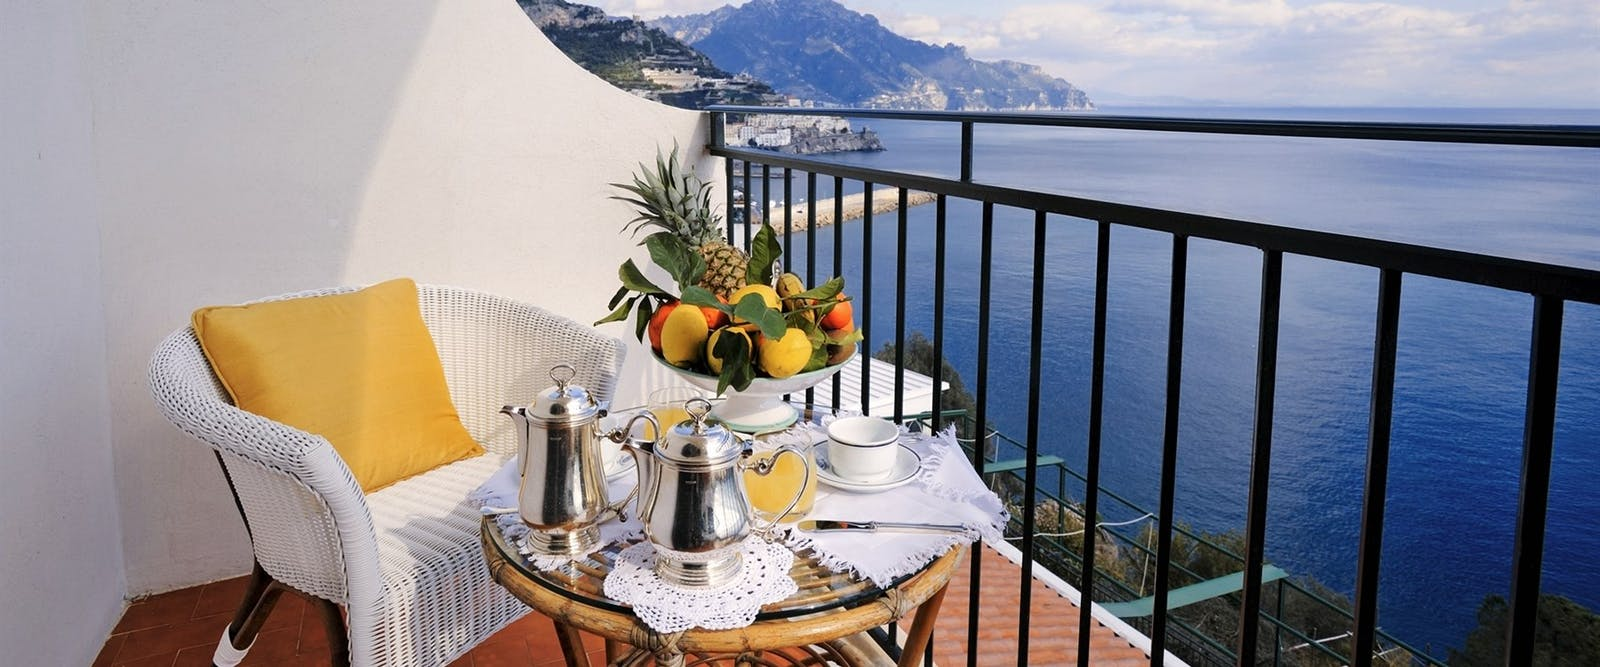 Superior Double Room Terrace at Hotel Santa Caterina, Amalfi Coast, Italy